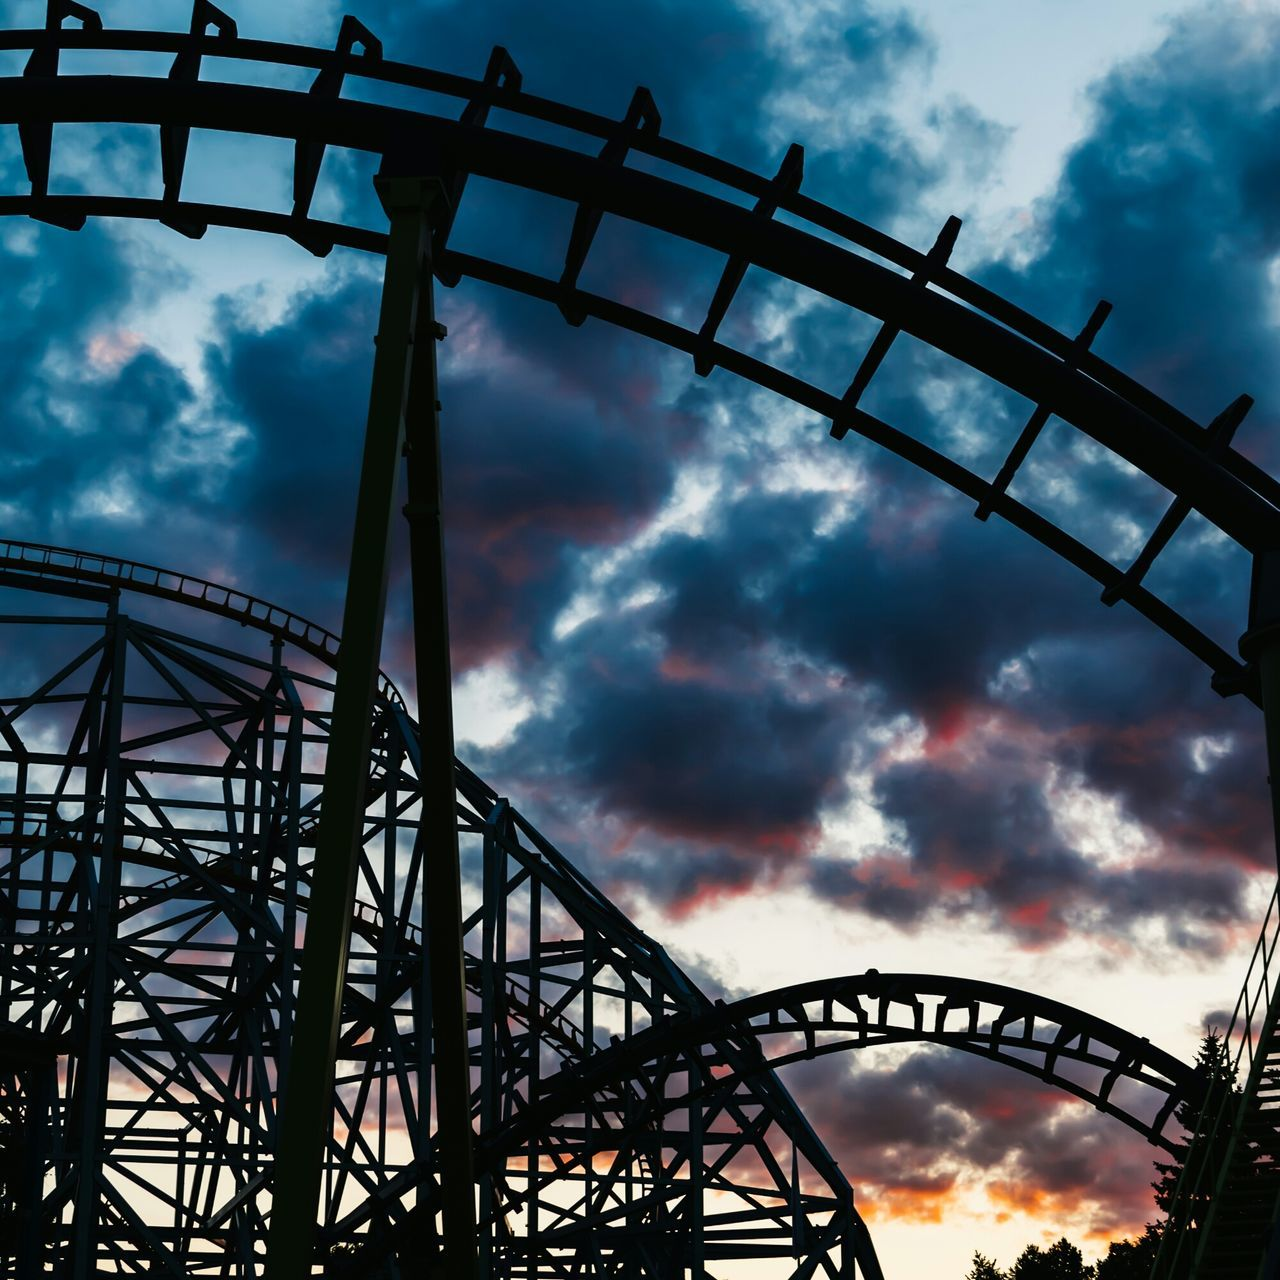 Low Angle View Of Rollercoaster Against Cloudy Sky At Sunset